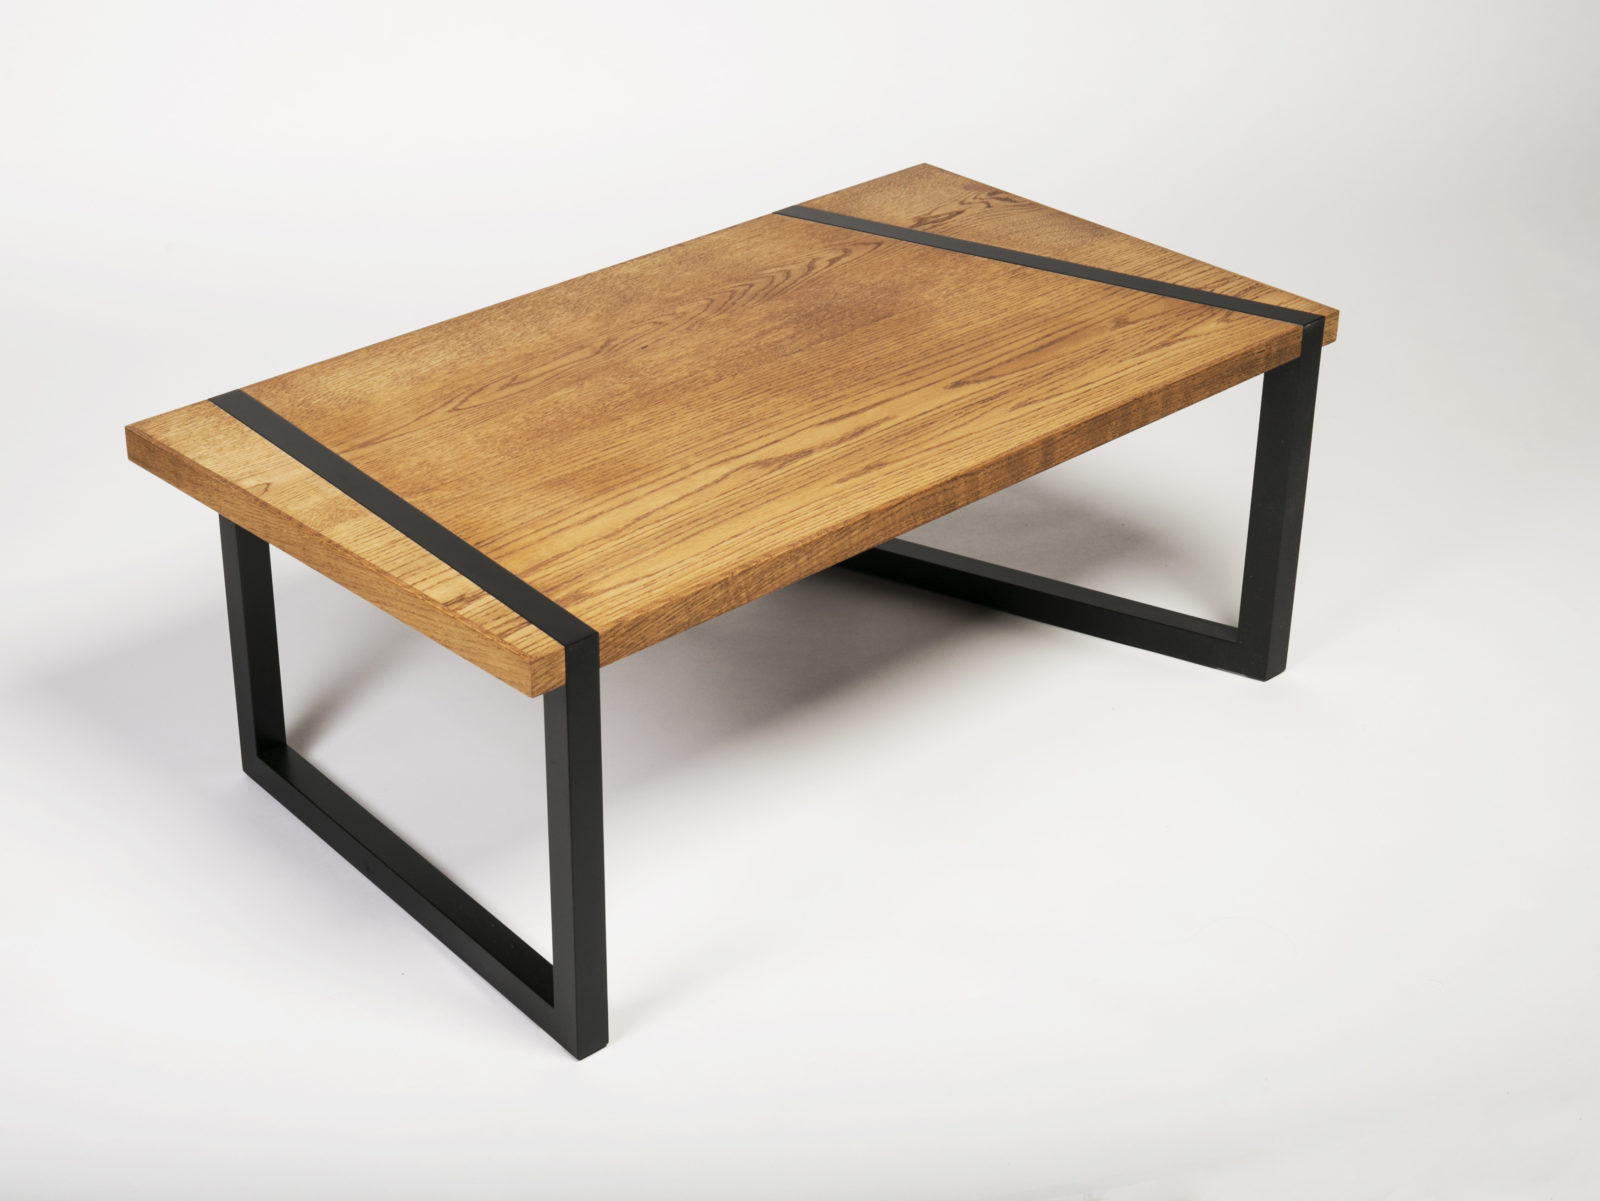 Oiled oak coffee table with lacquered legs